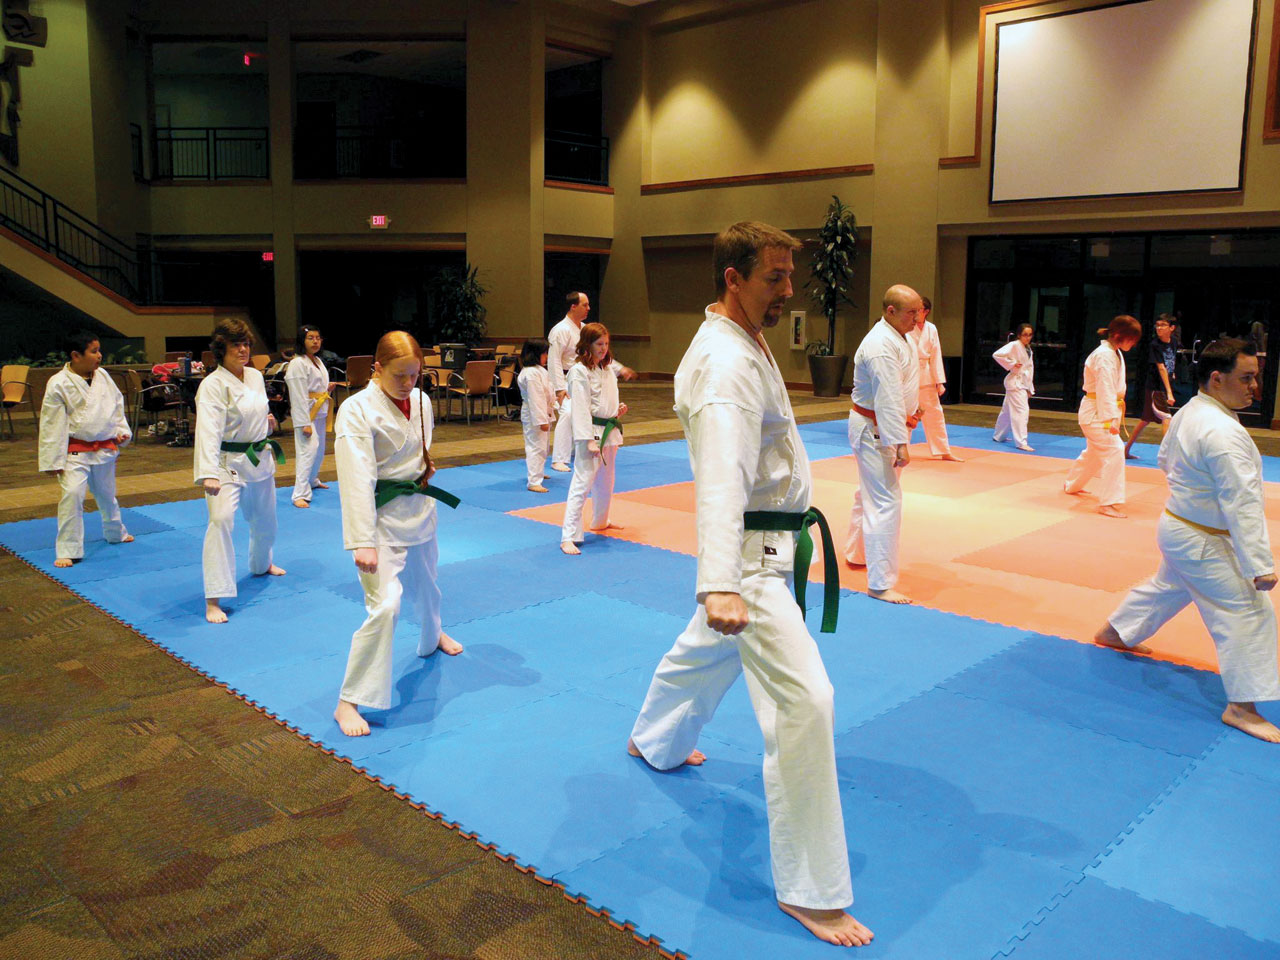 Karate ministry has 'staying power' at Moore, First